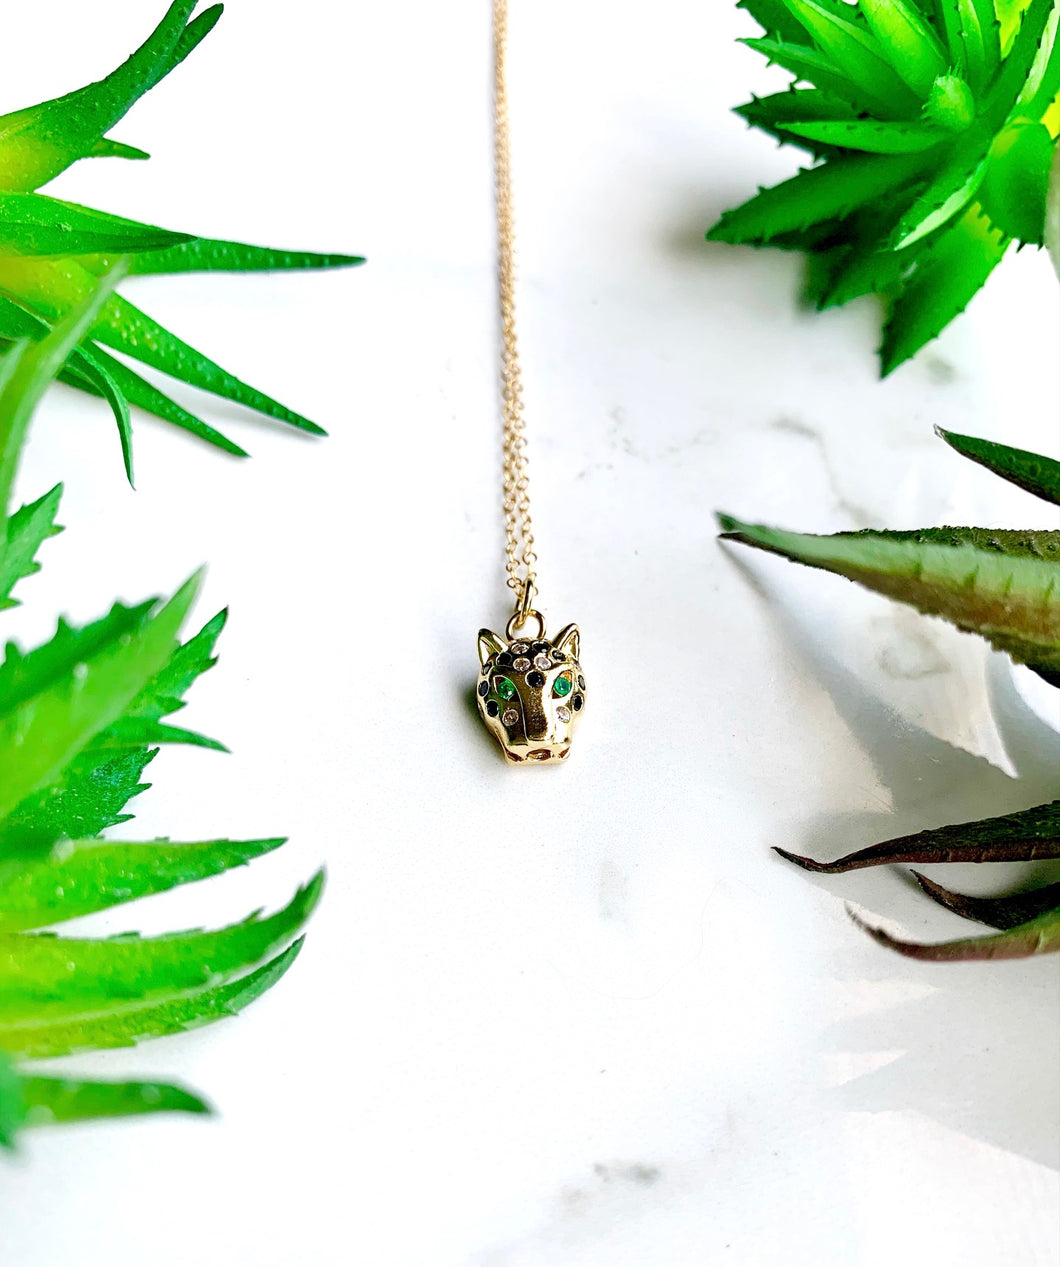 Gold Panther Charm Necklace